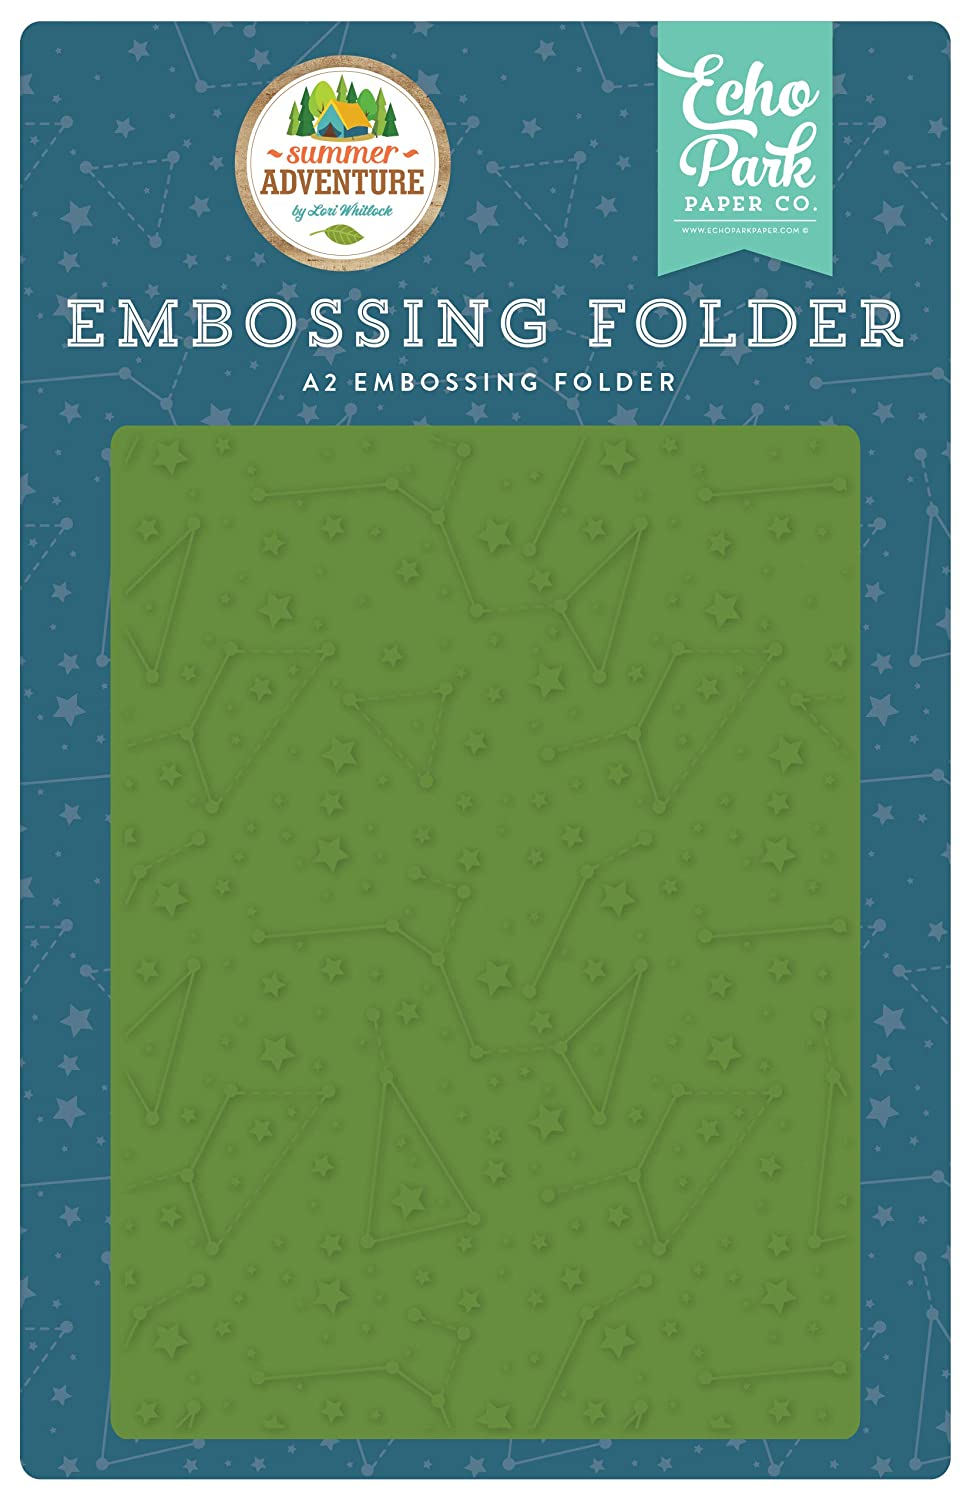 Echo Park Paper Company SA180031 Constellations Embossing Folder Teal, Brown, red, Navy, Green, Orange